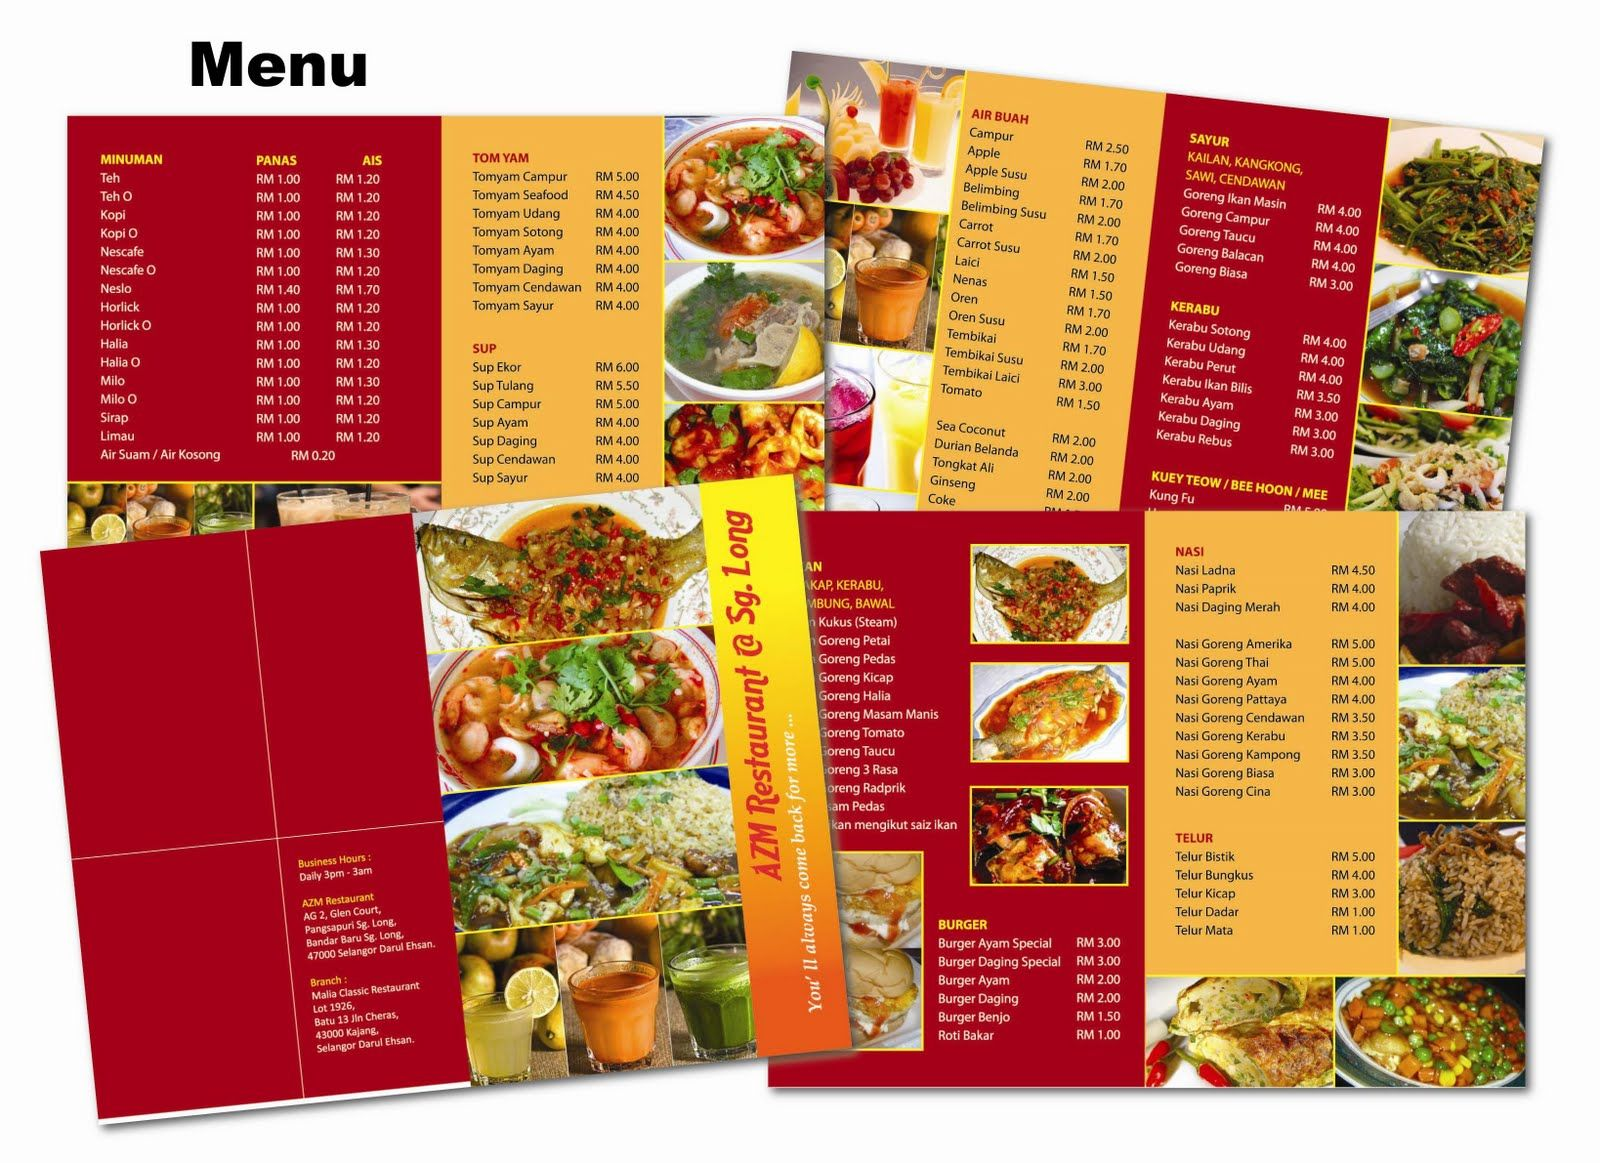 23 Creative Restaurant Menu Templates (PSD & InDesign) | Graphic ...